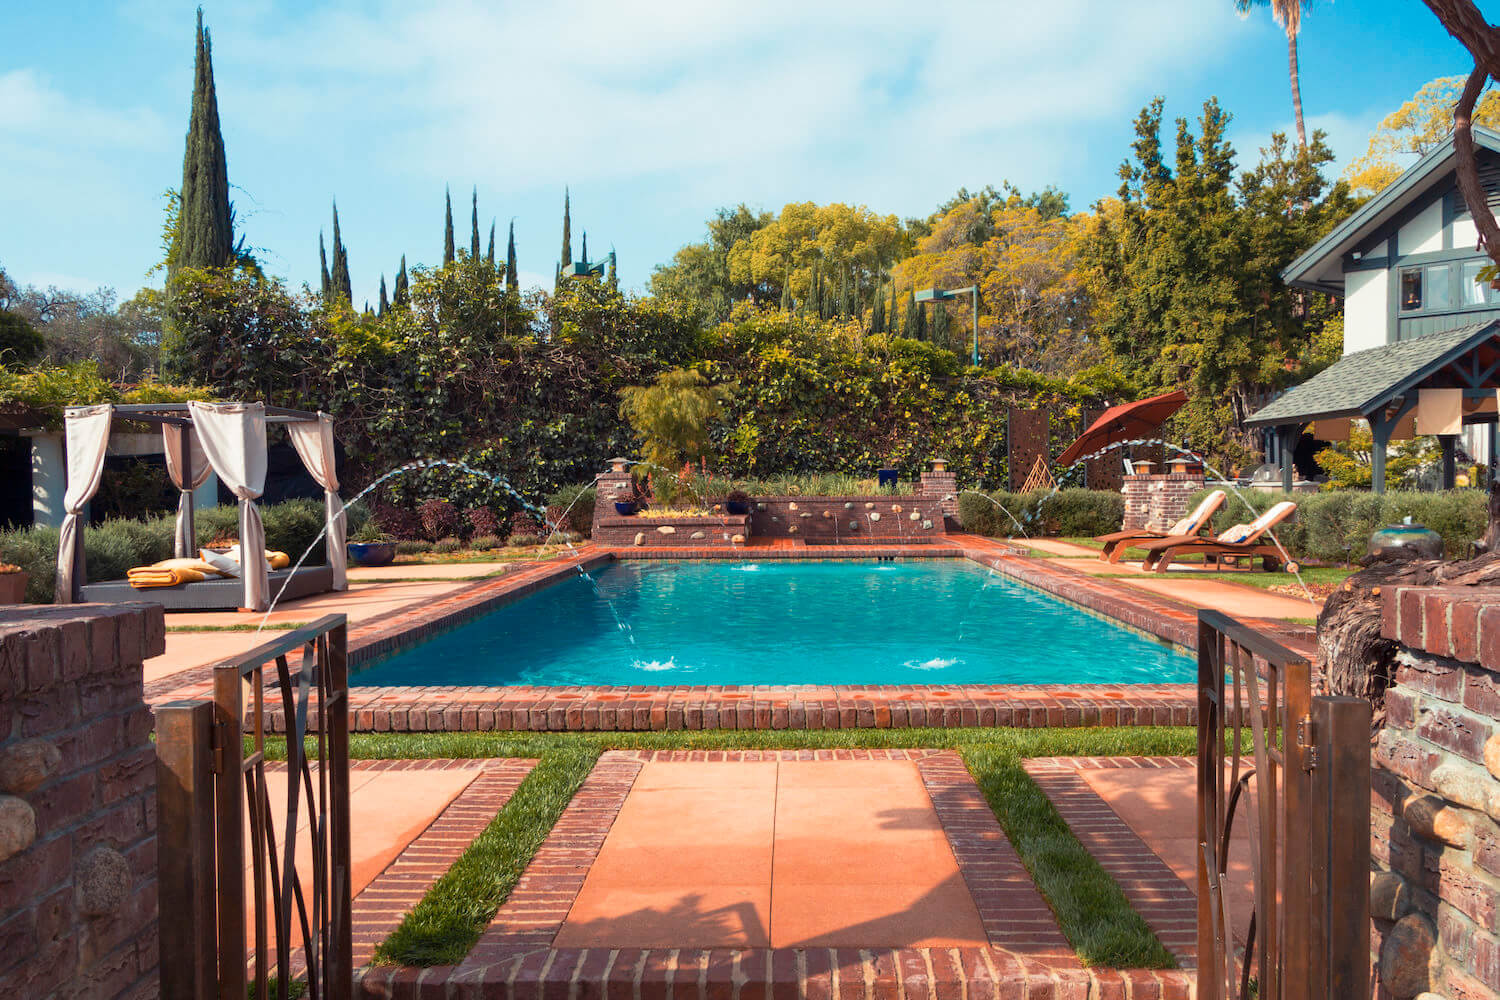 Gallery southern california swimming pools for Garden city pool jobs